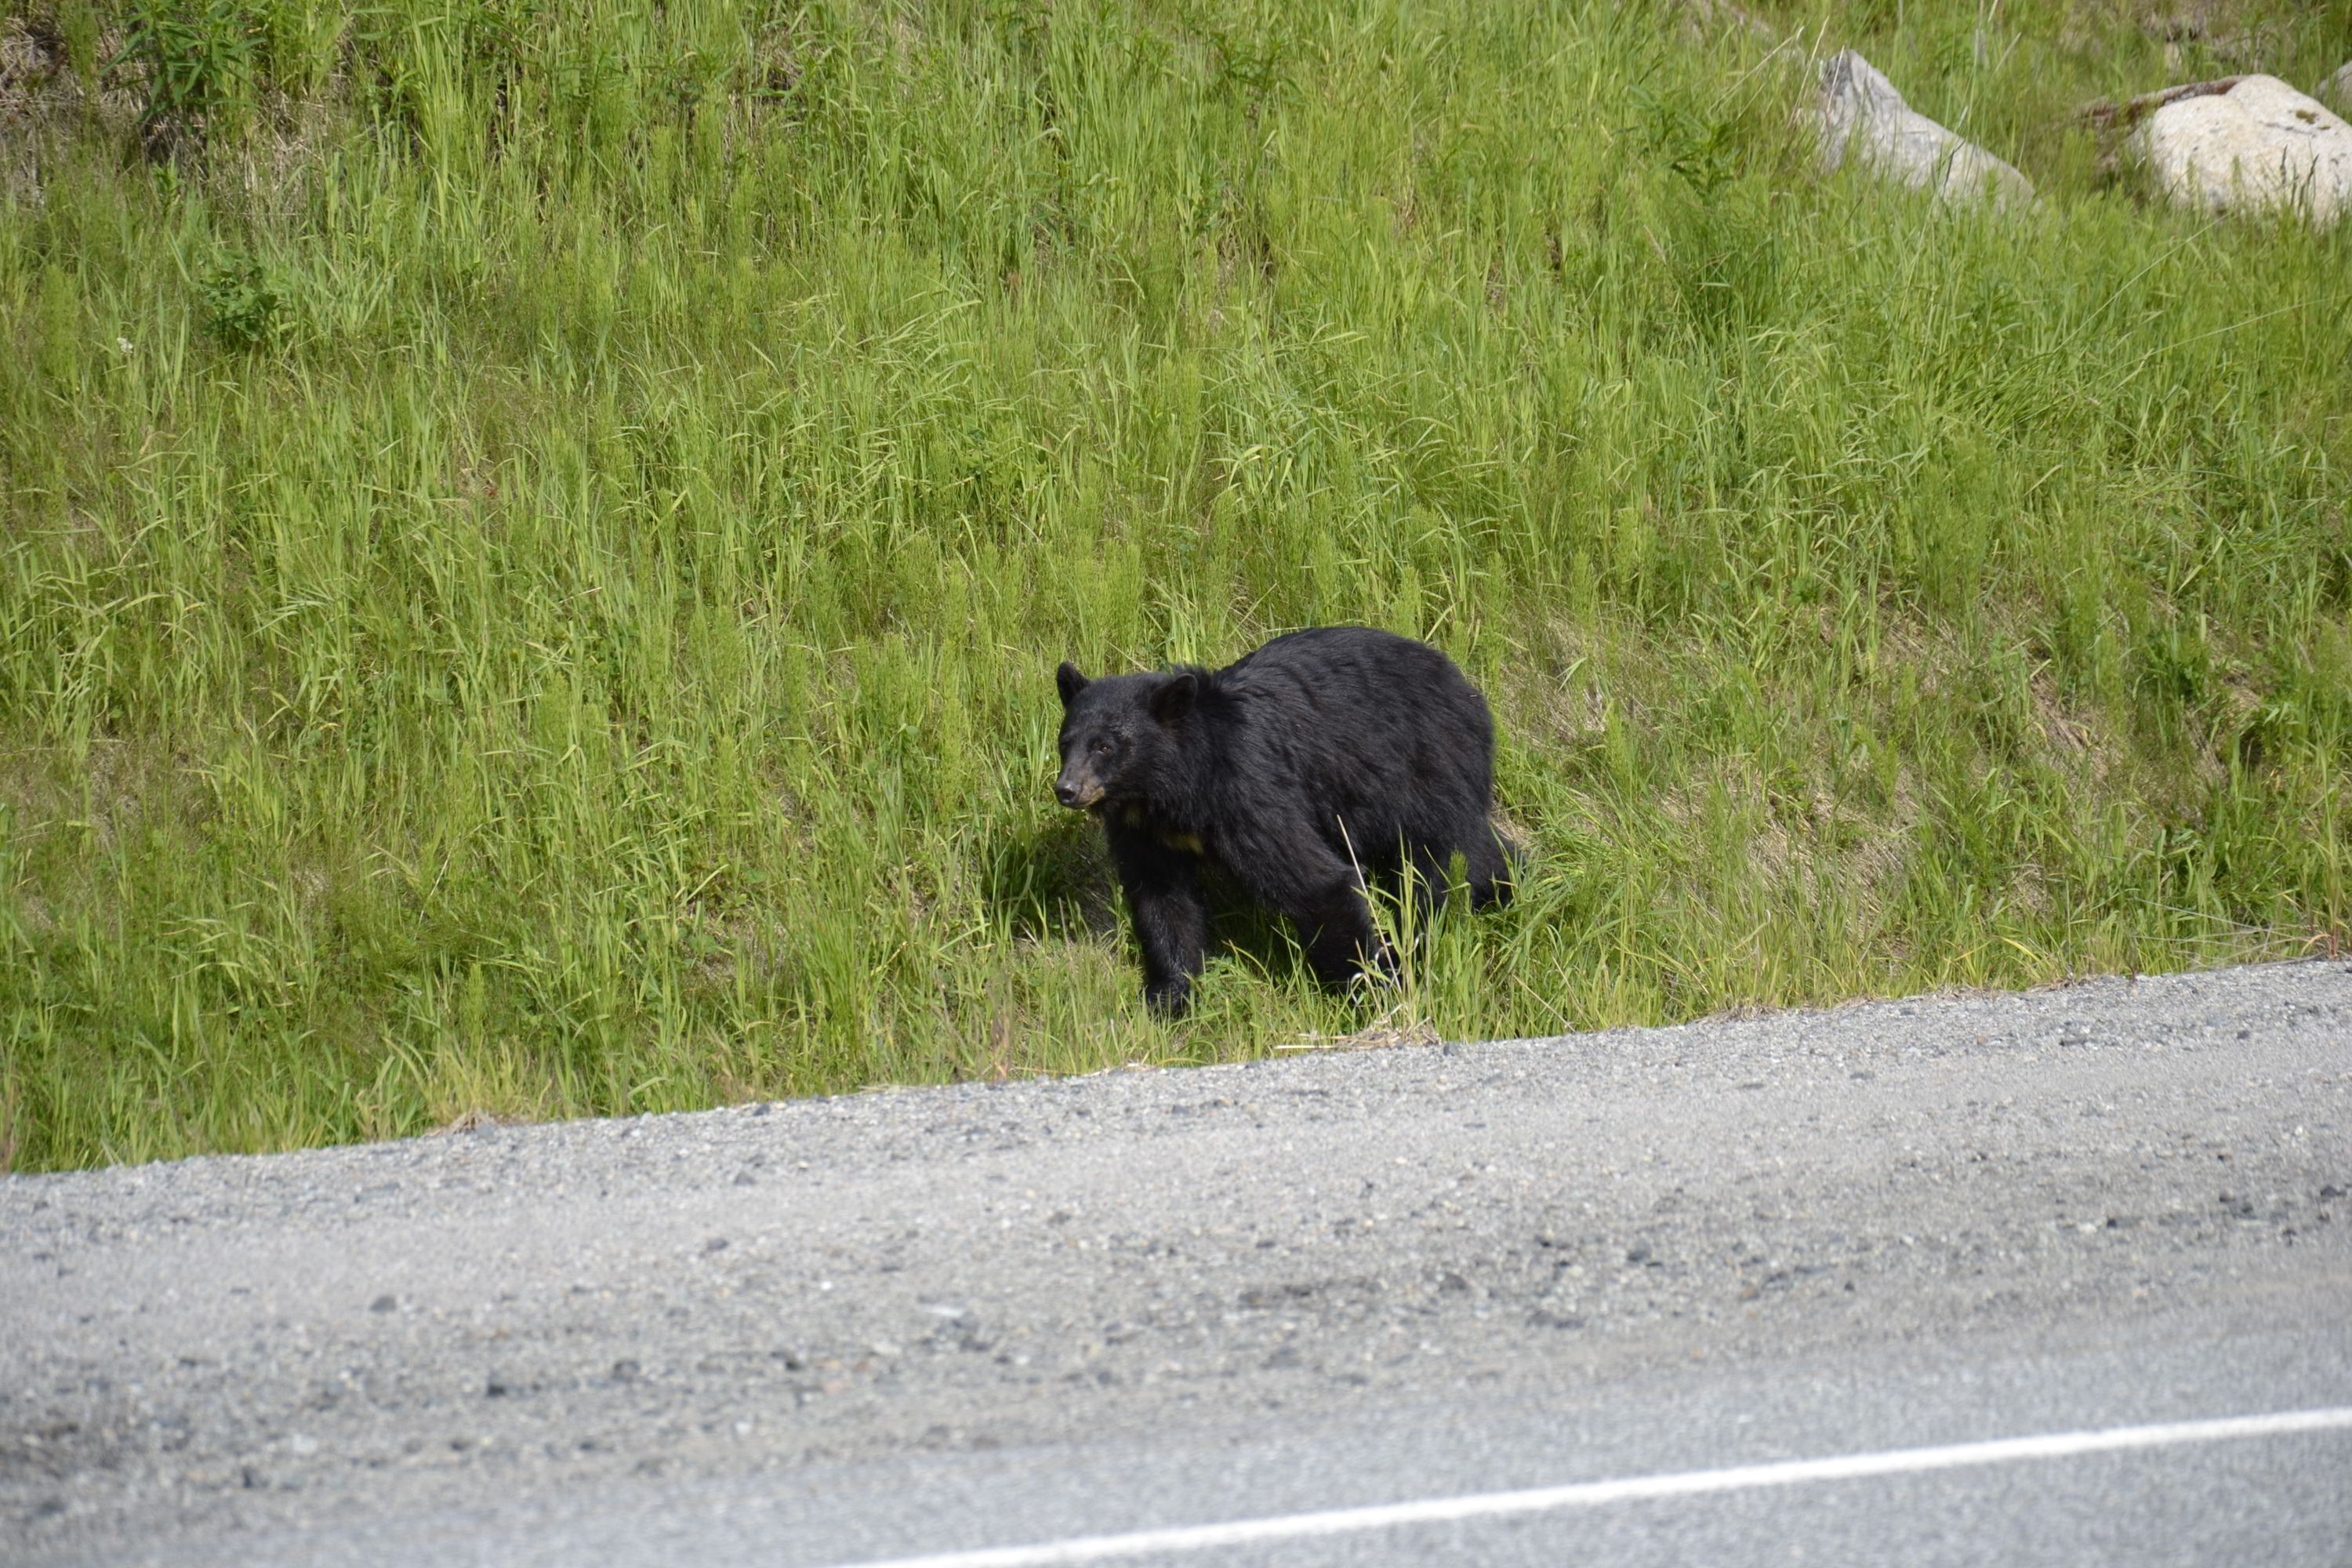 Bear Cub, Whistler, British Columbia, Canada